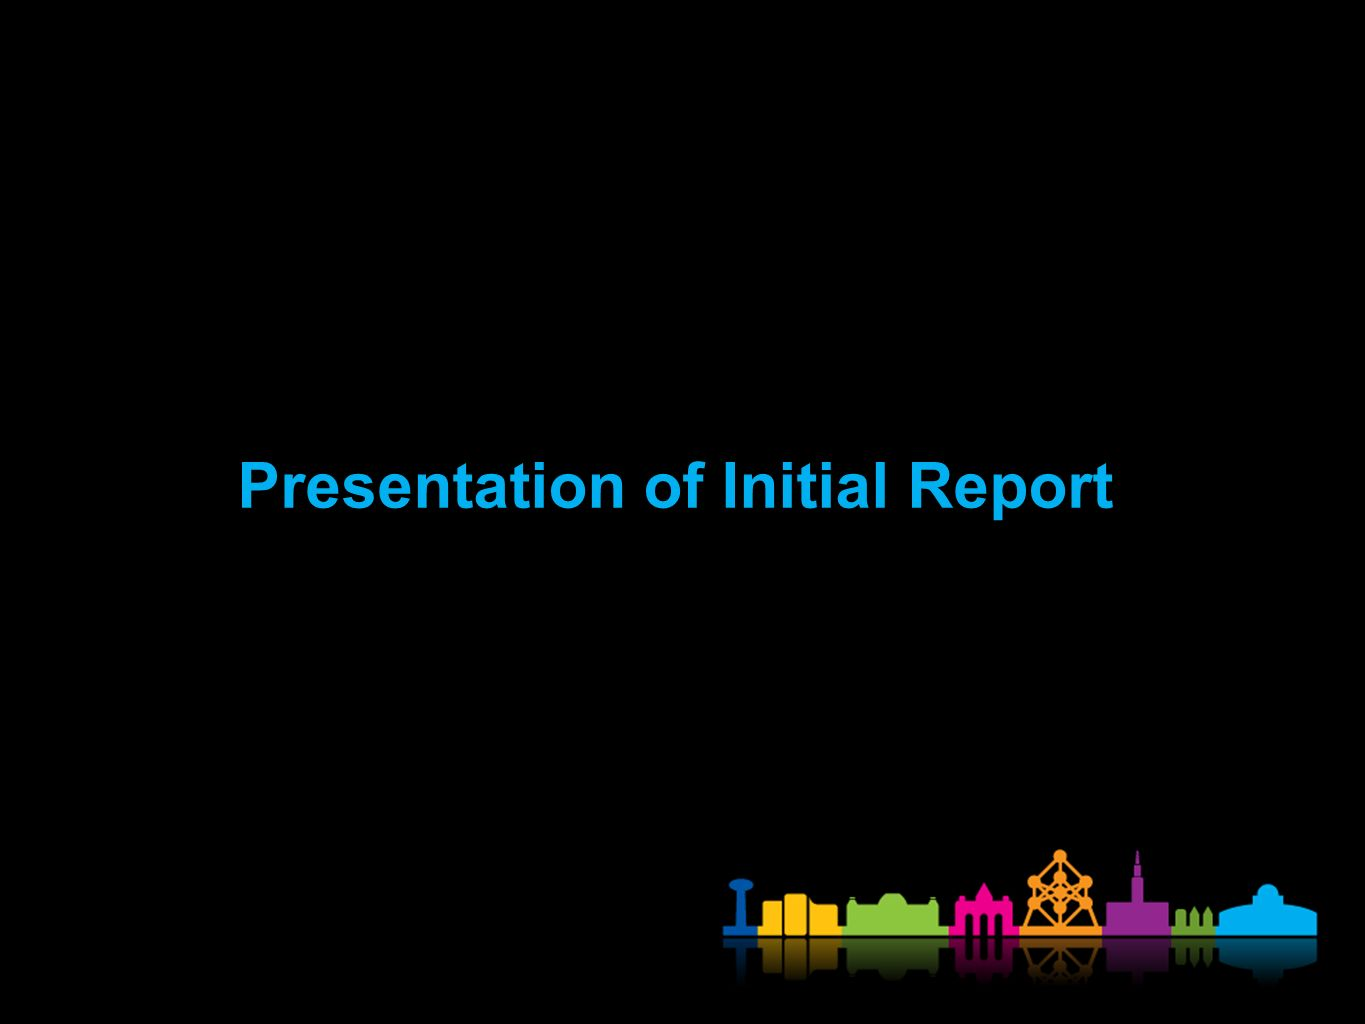 Presentation of Initial Report